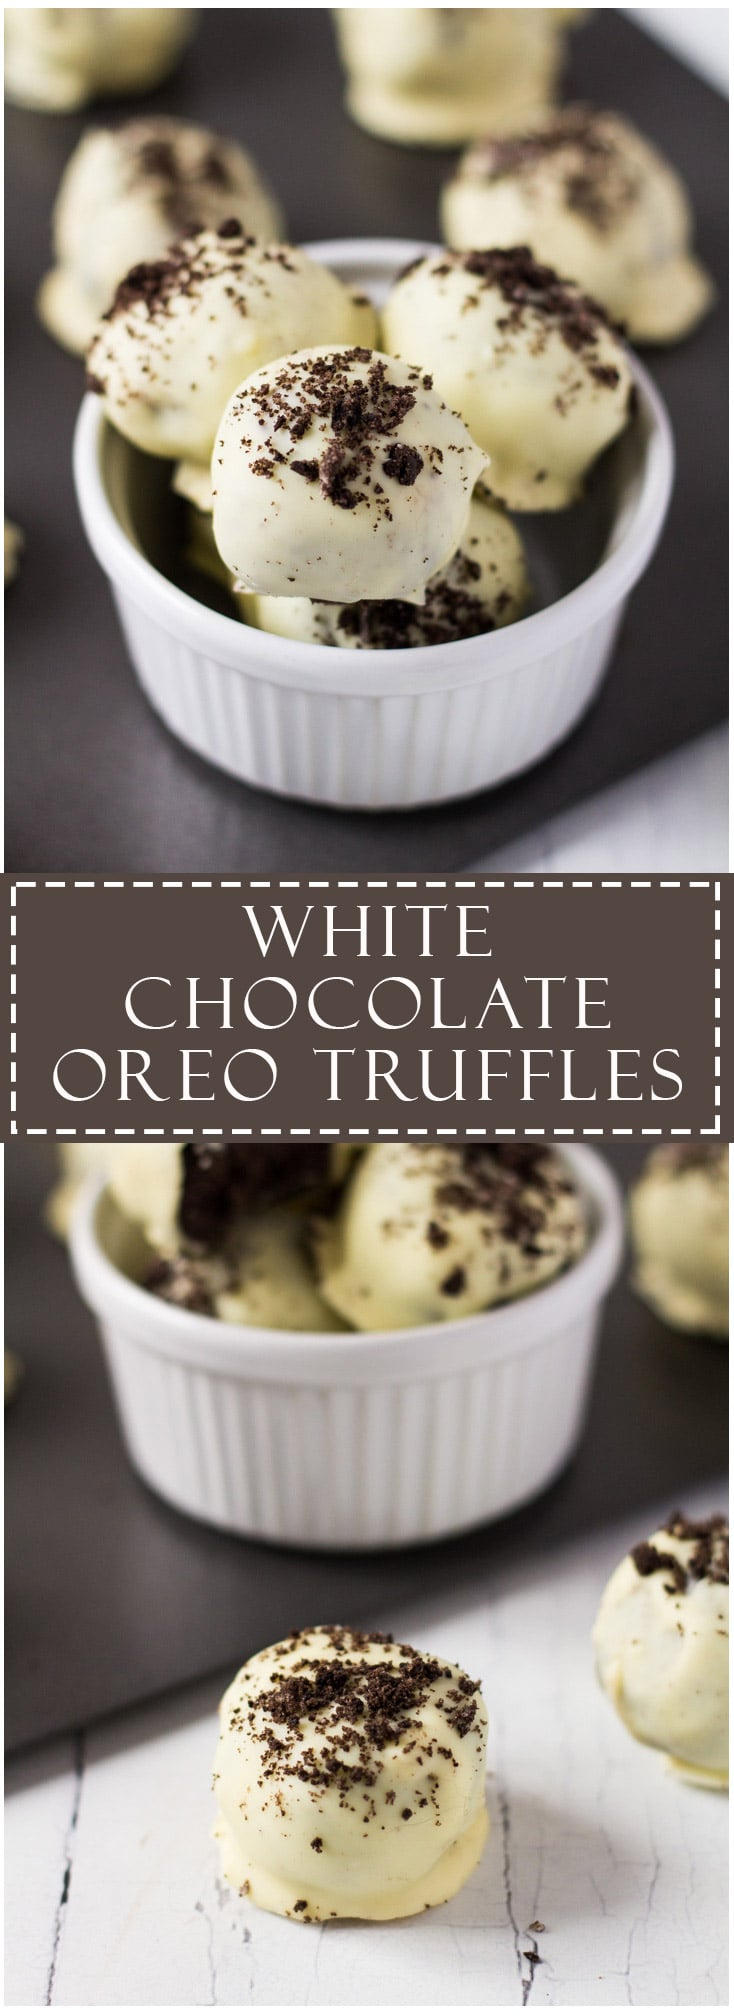 White Chocolate Oreo Truffles-Deliciously creamy and fudgy Oreo truffles dipped in white chocolate, and sprinkled with Oreo crumbs. No-bake and only 3 ingredients!